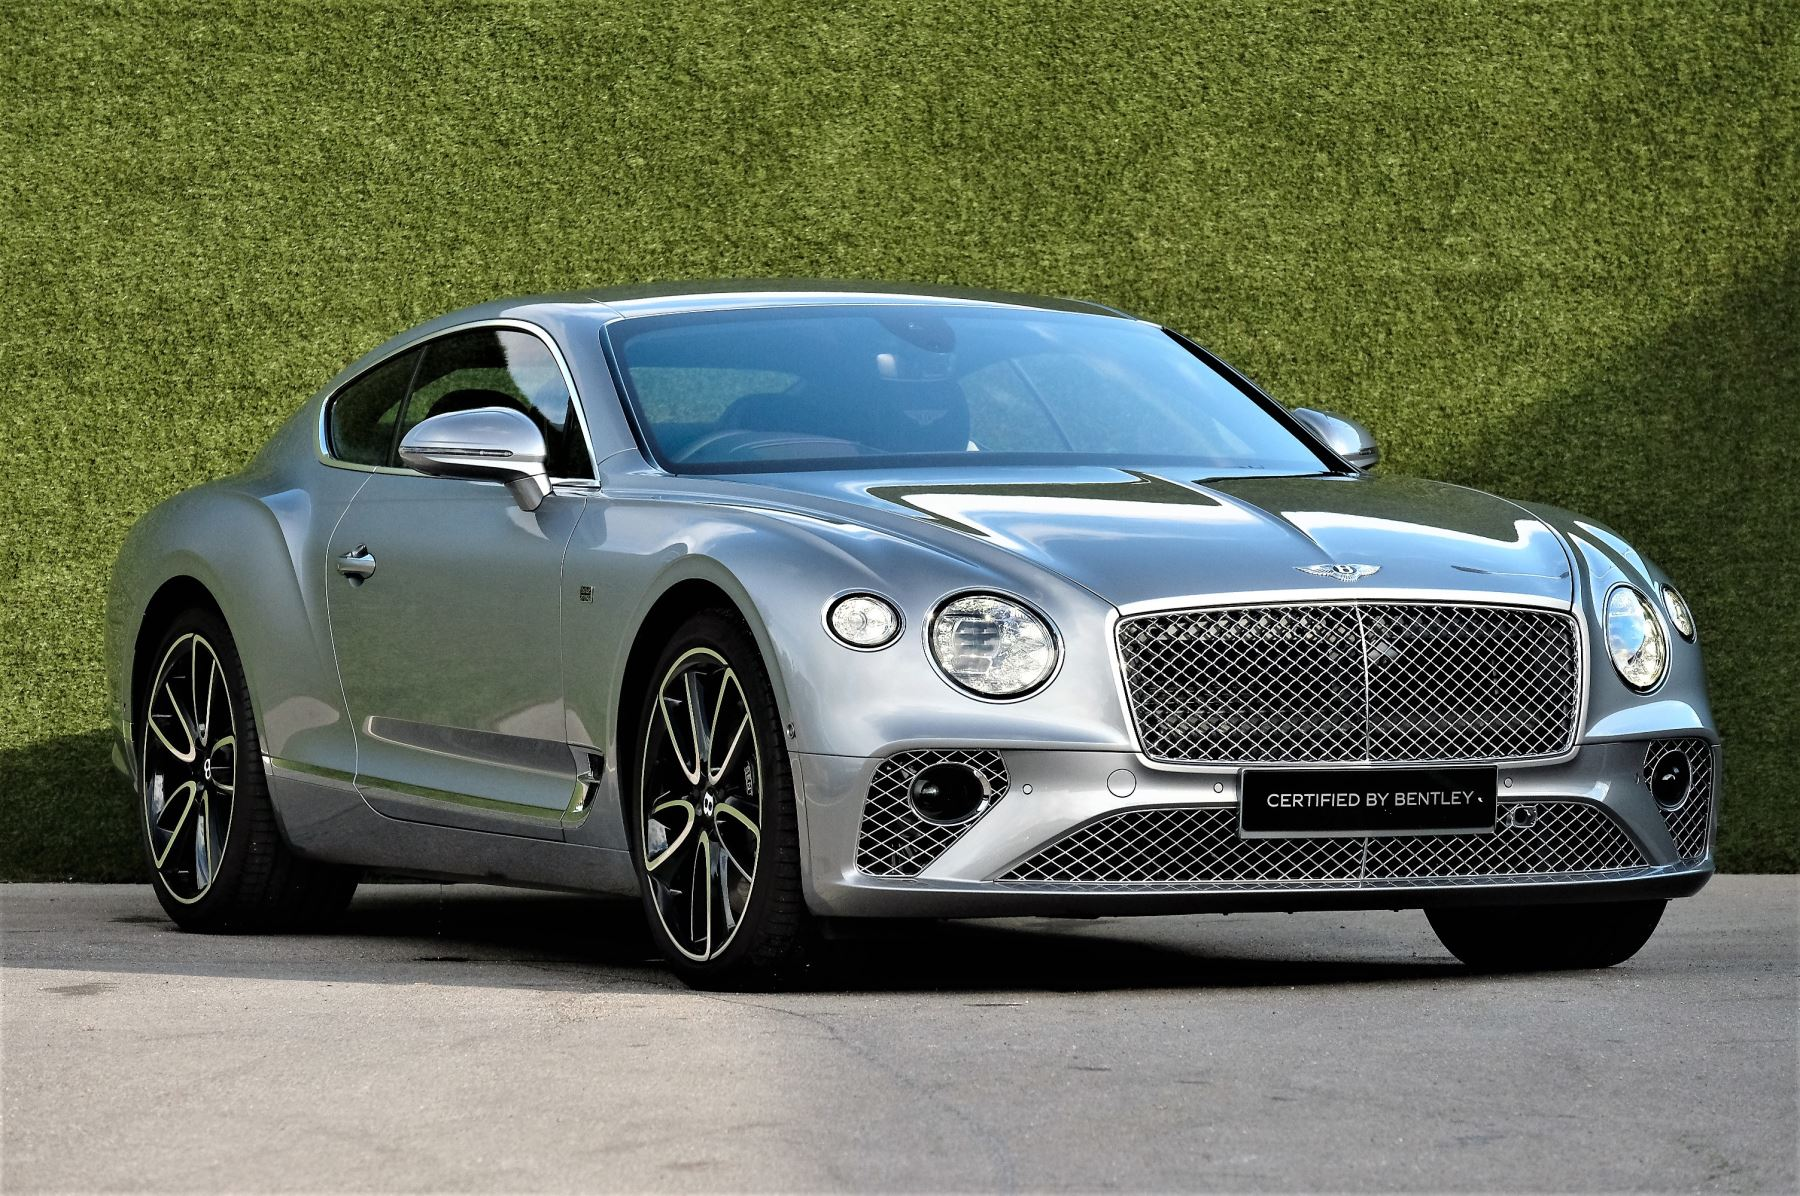 Bentley Continental GT 6.0 W12 First Edition 2dr Auto Automatic Coupe